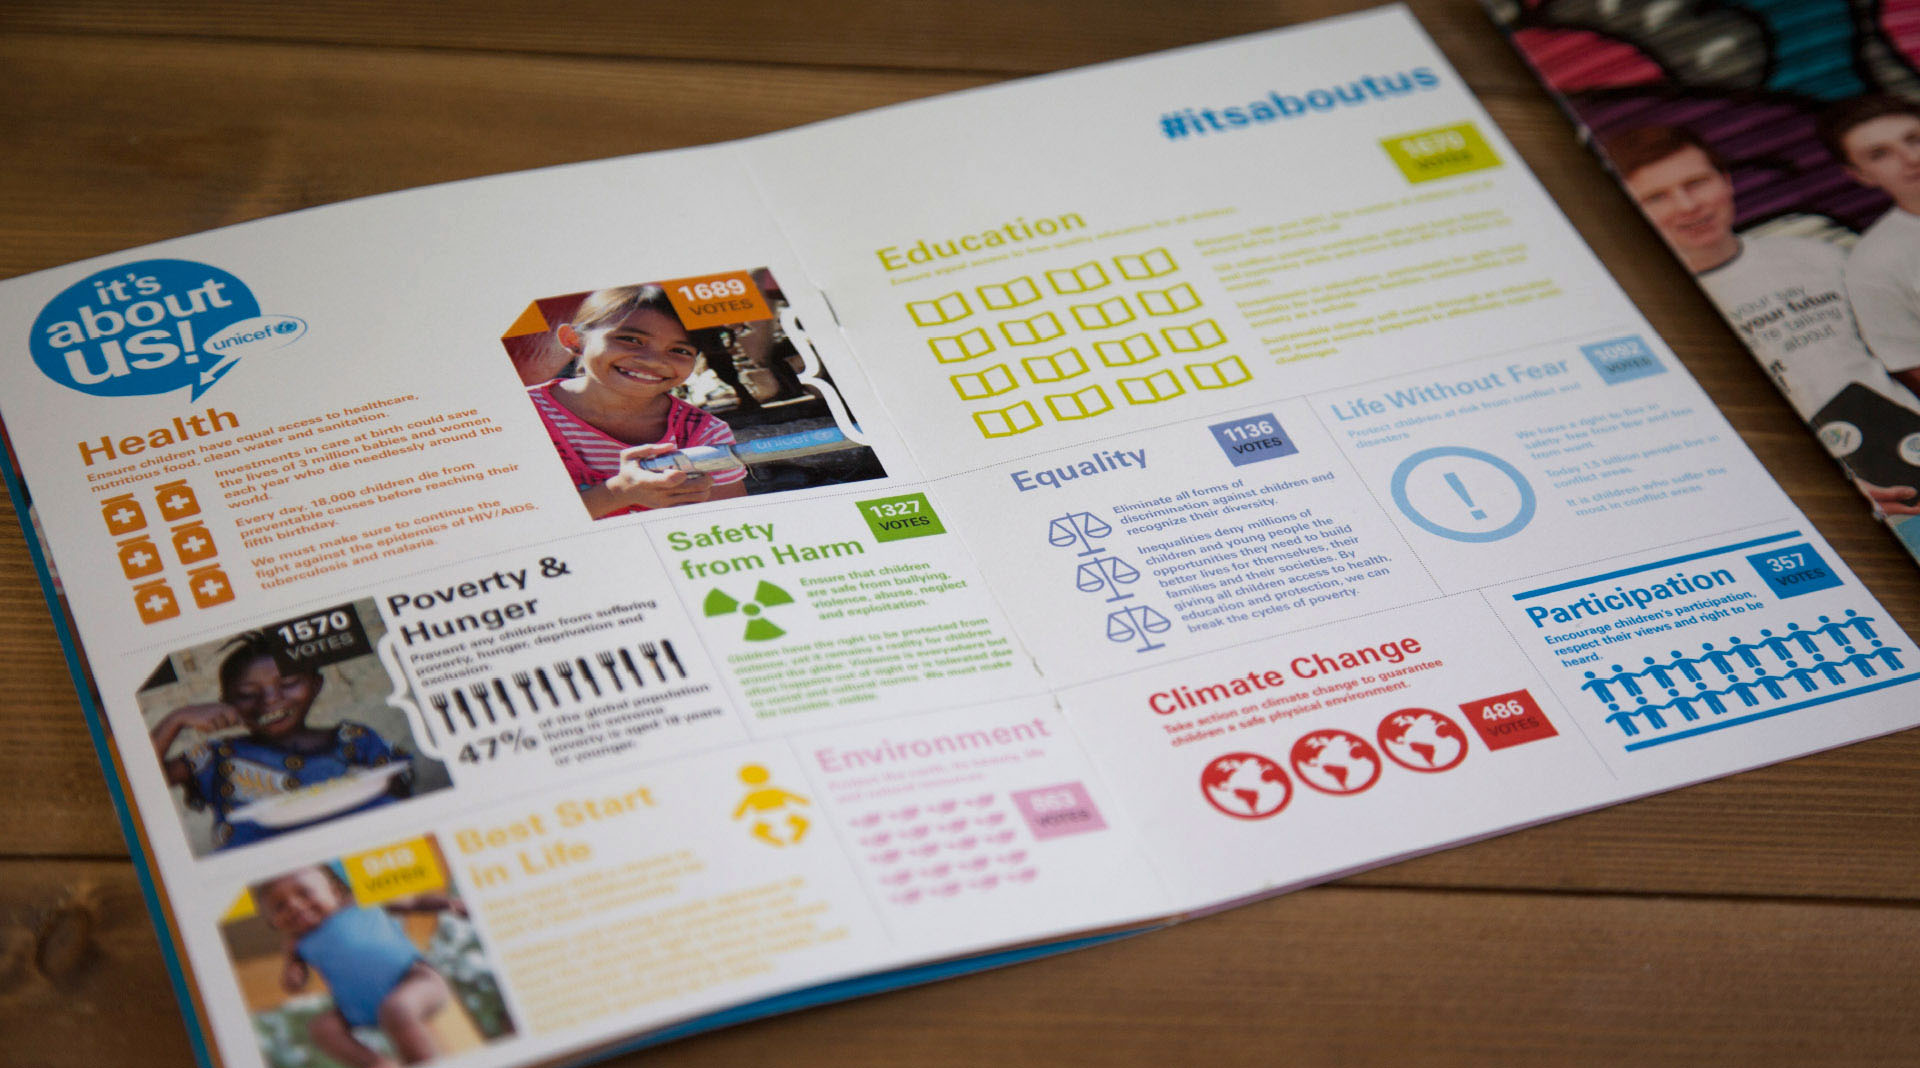 Its About Us brochure for Unicef.